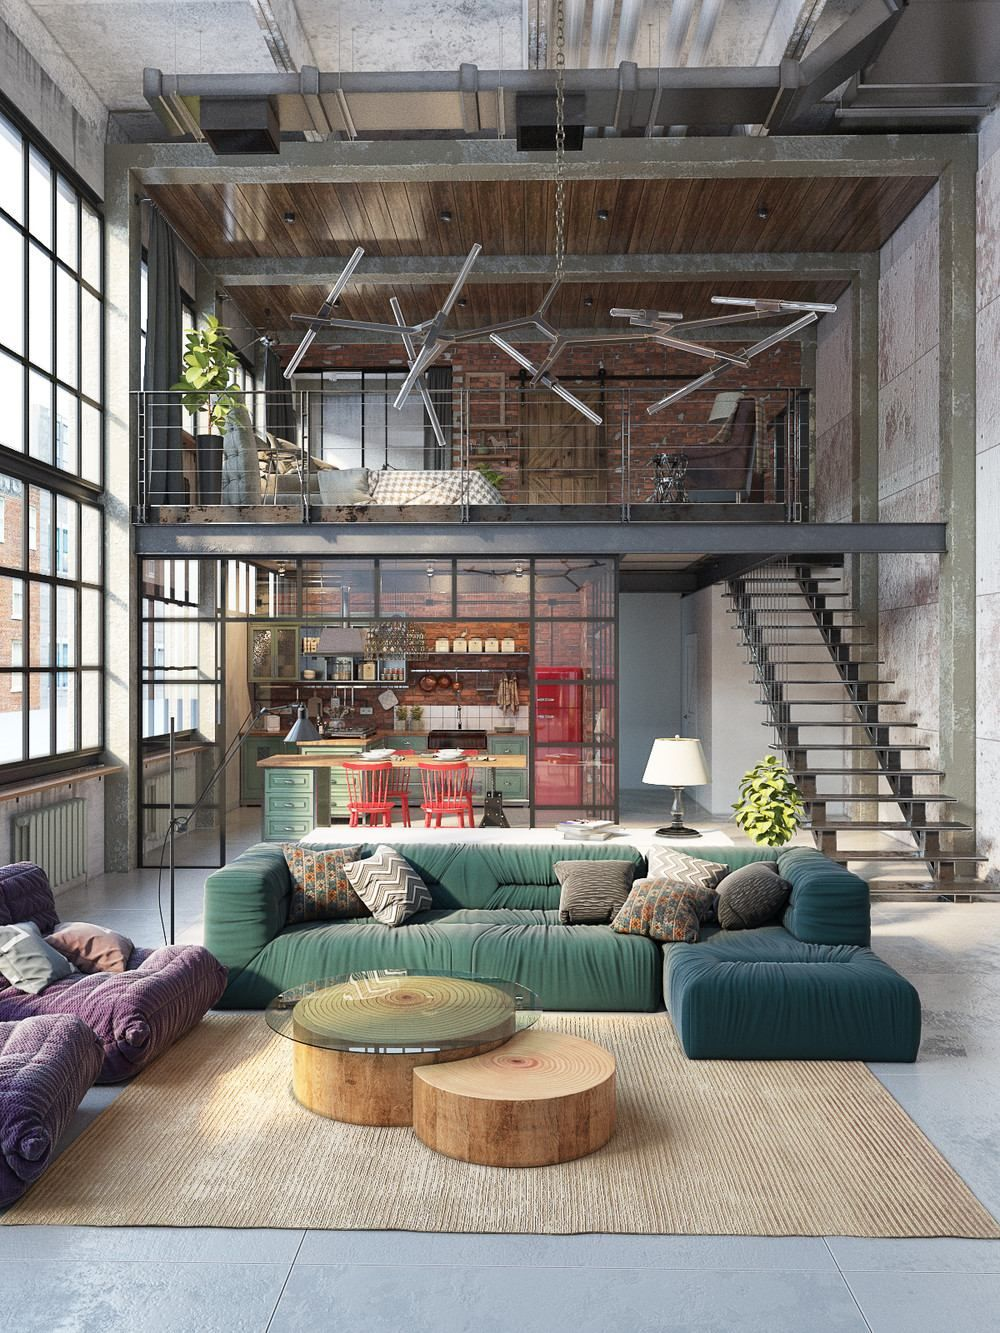 Home Interior Design — Industrial loft features exposed brick and ...